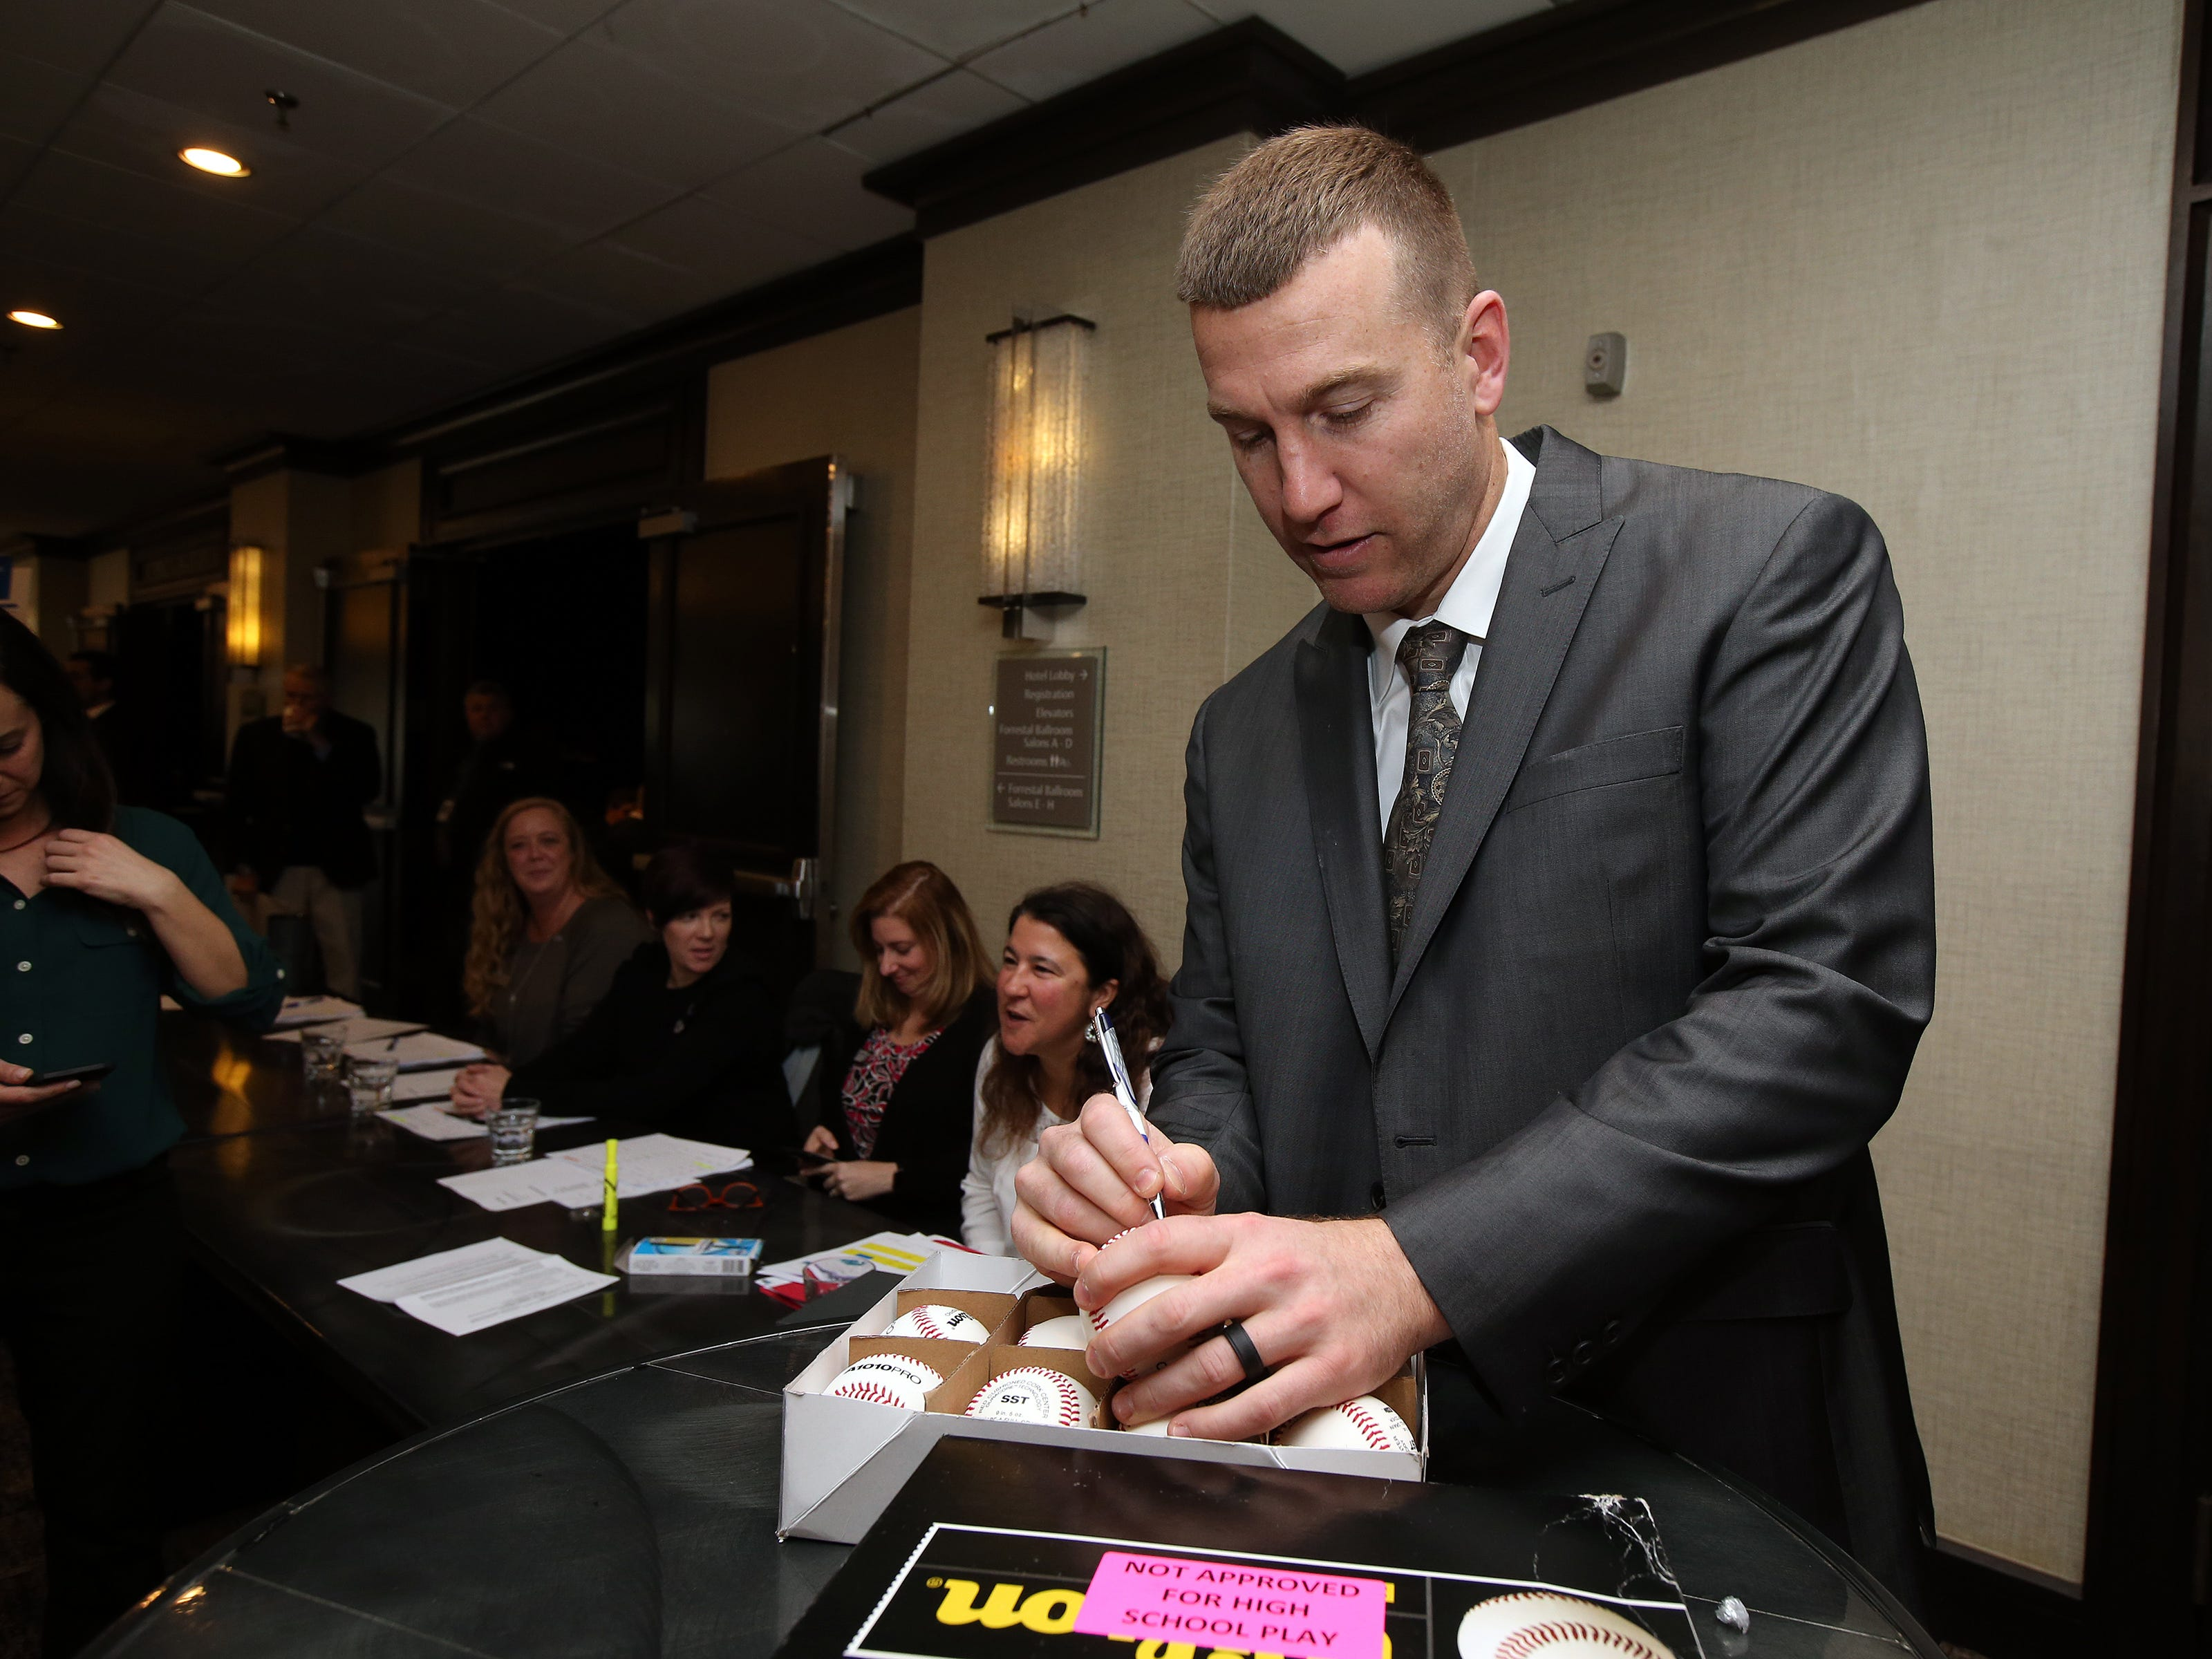 Todd Frazier of the New York Mets, and a Toms River native, signs baseballs before being inducted into the NJSIAA Hall of Fame at the Westin Princeton at Forrestal Village in Princeton, NJ Monday, December 3, 2018.